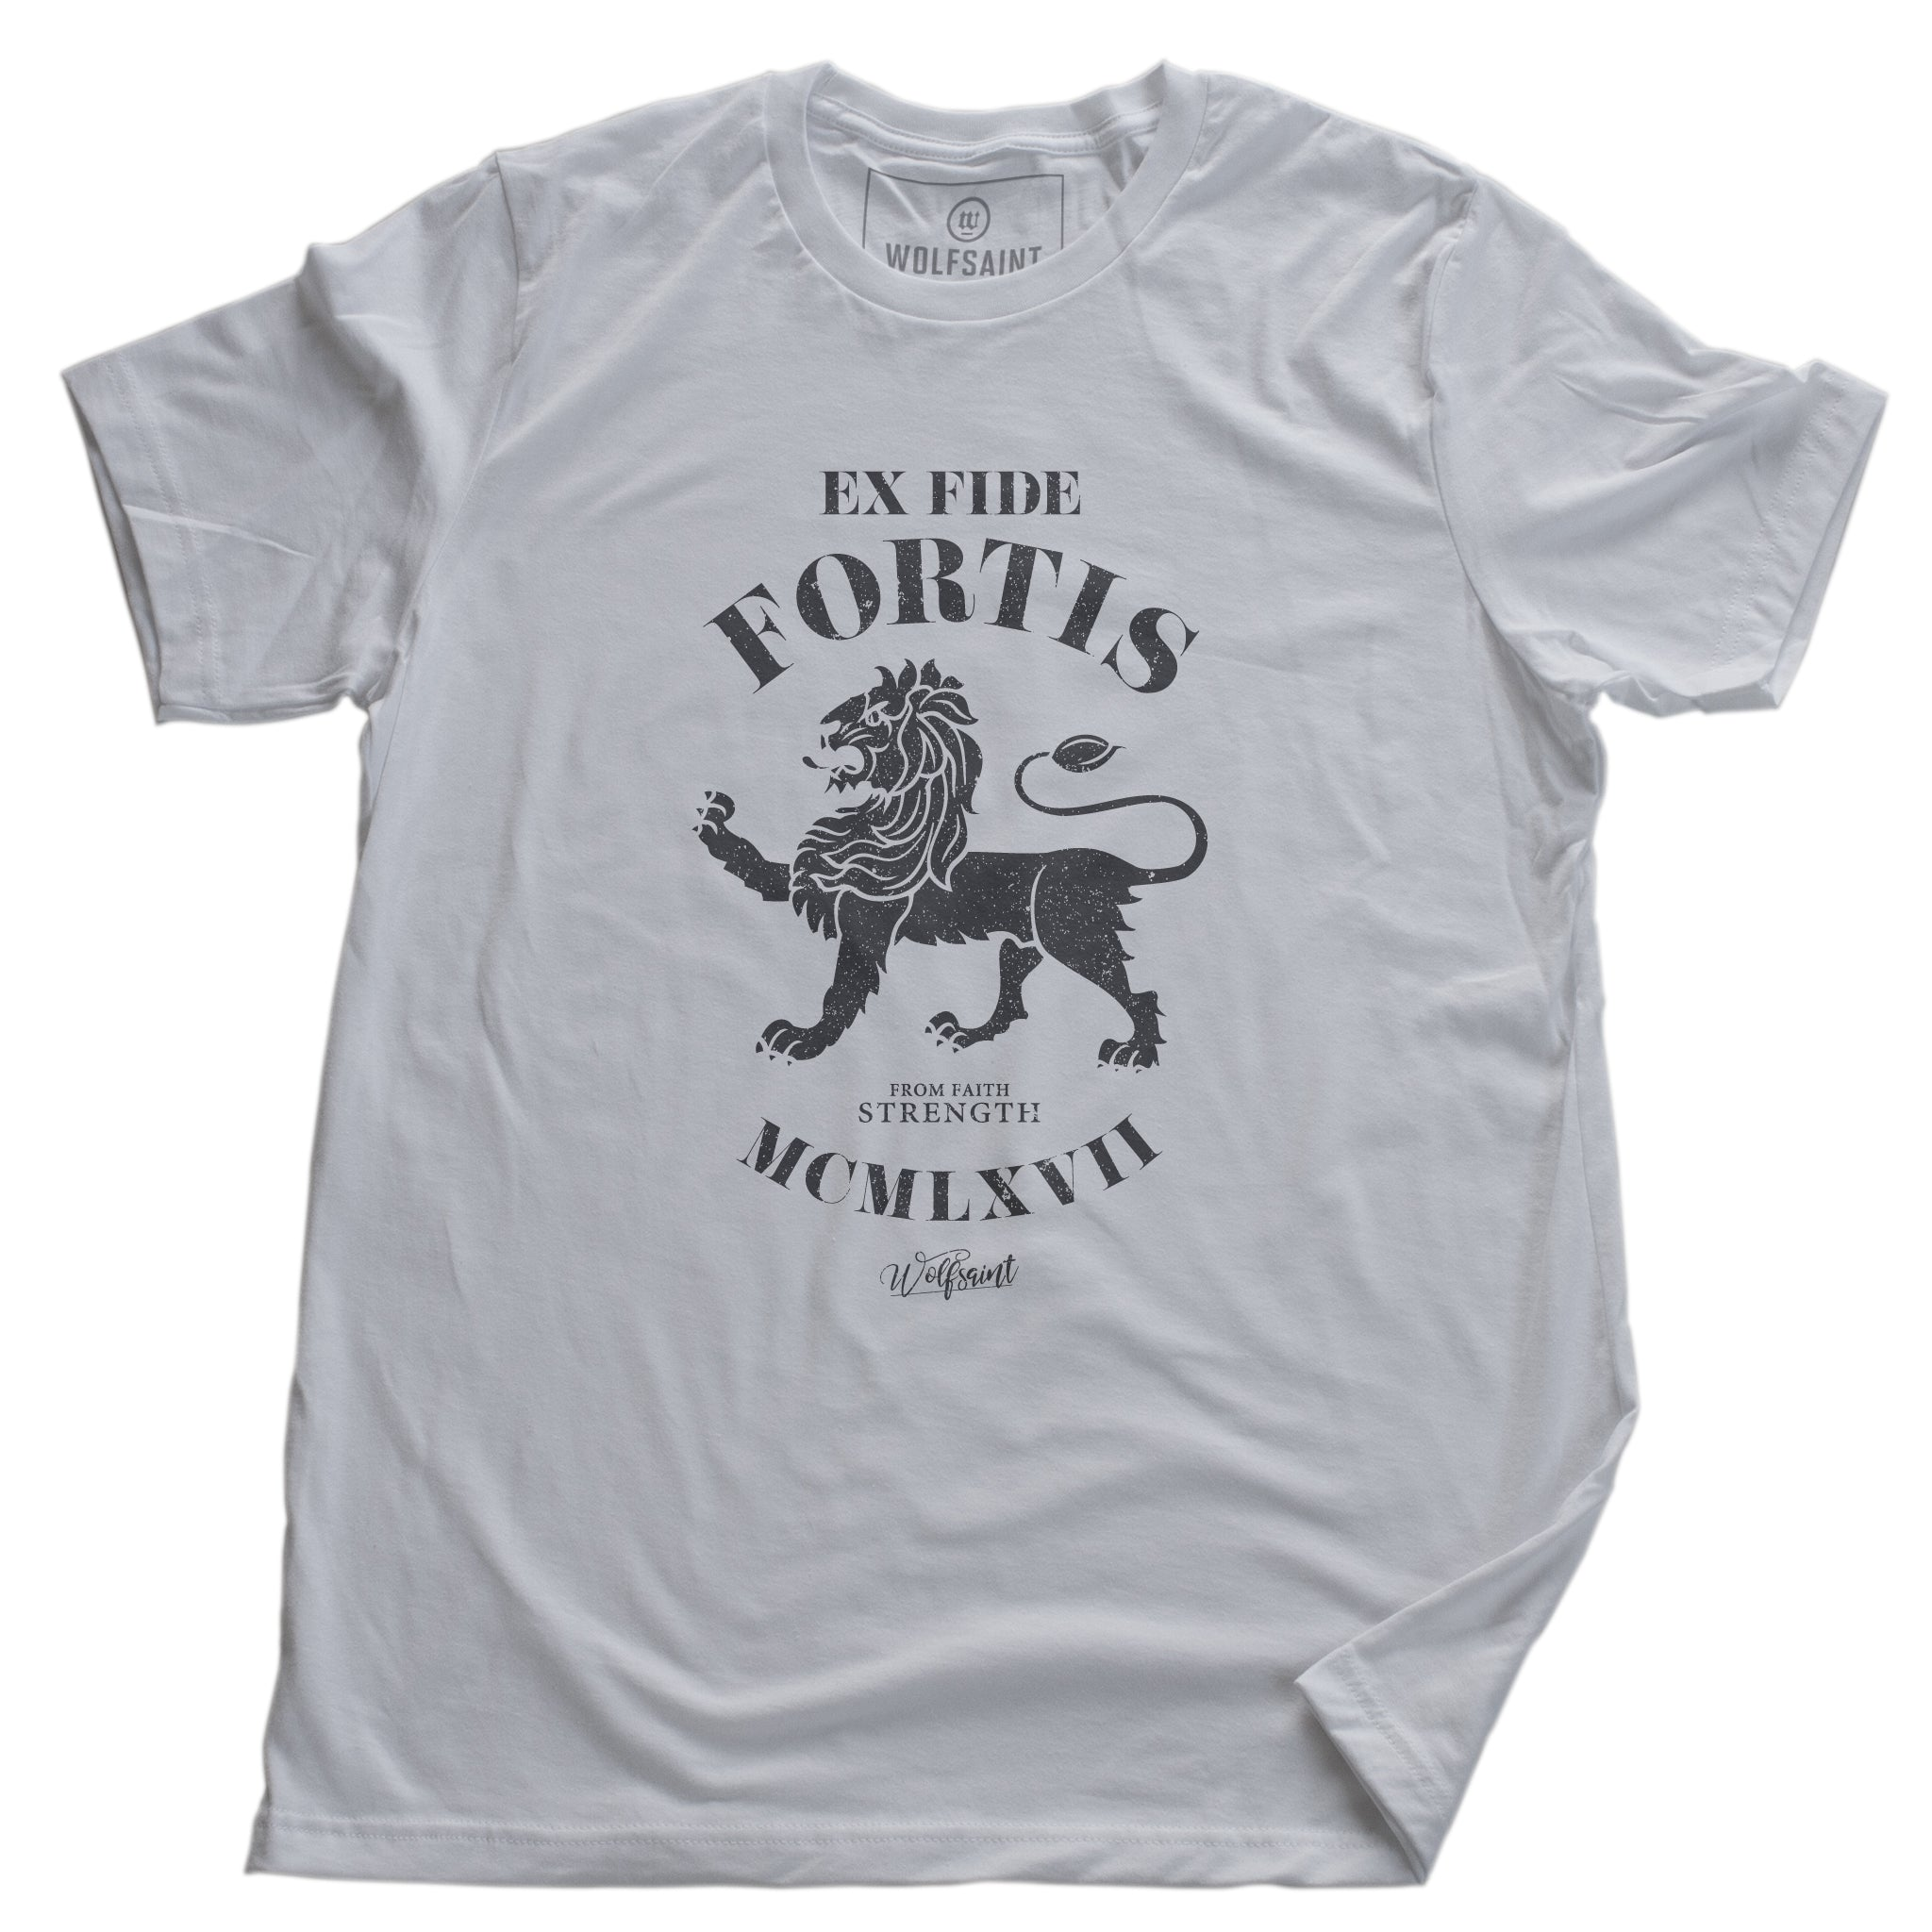 "A vintage-inspired classic white retro t-shirt featuring a strong graphic of a lion, with the Latin phrase meaning ""Out of faith, strength."" By wolfsaint.net"